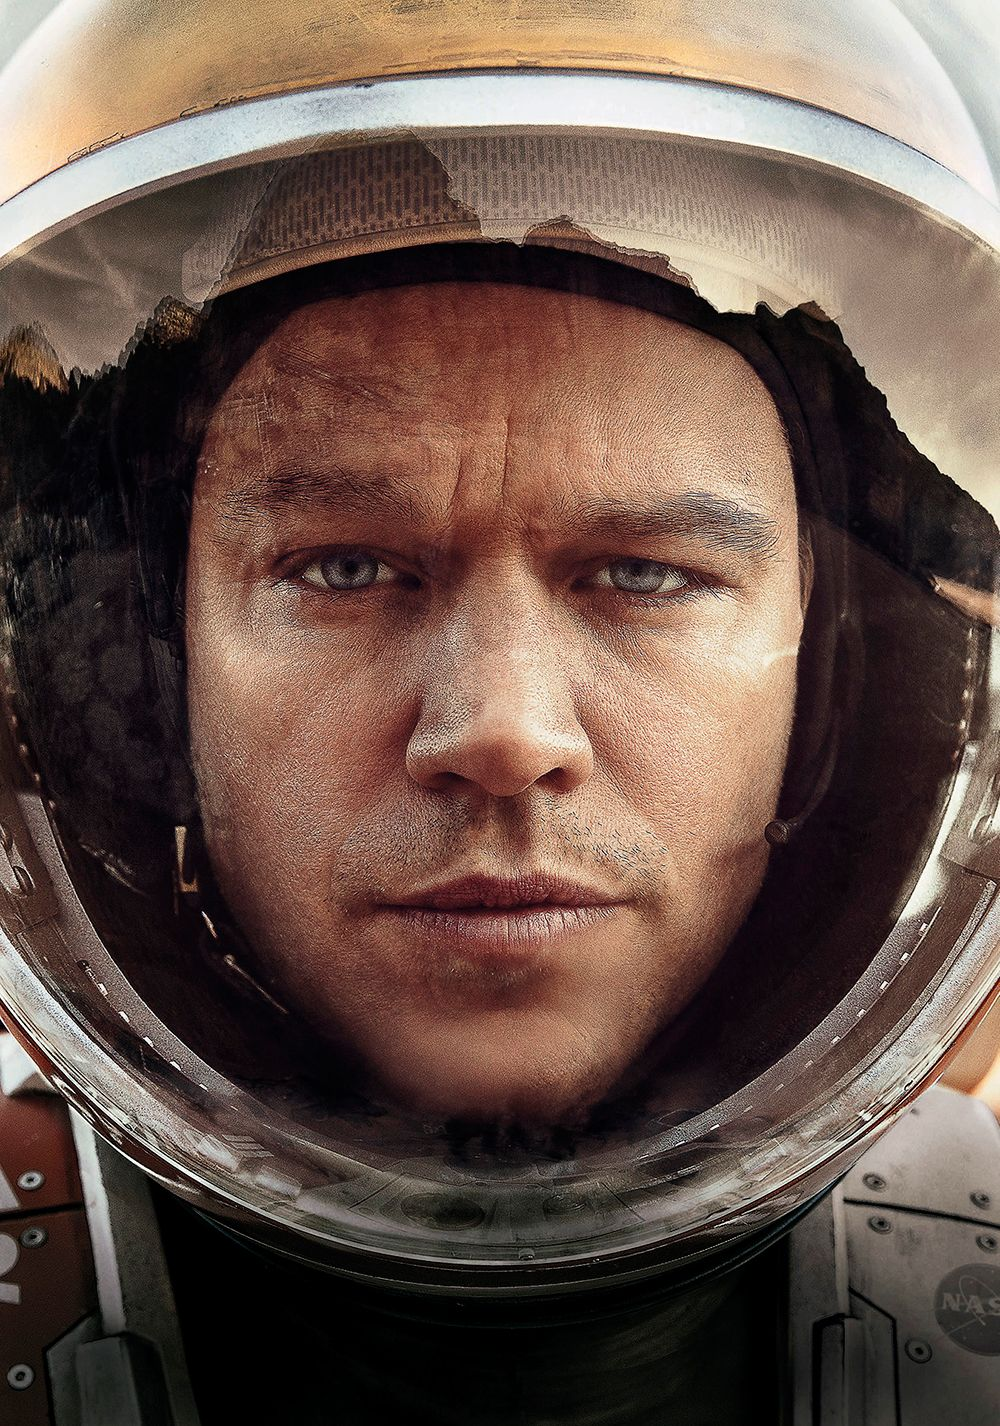 The Martian film poster | The martian, Full movies online free